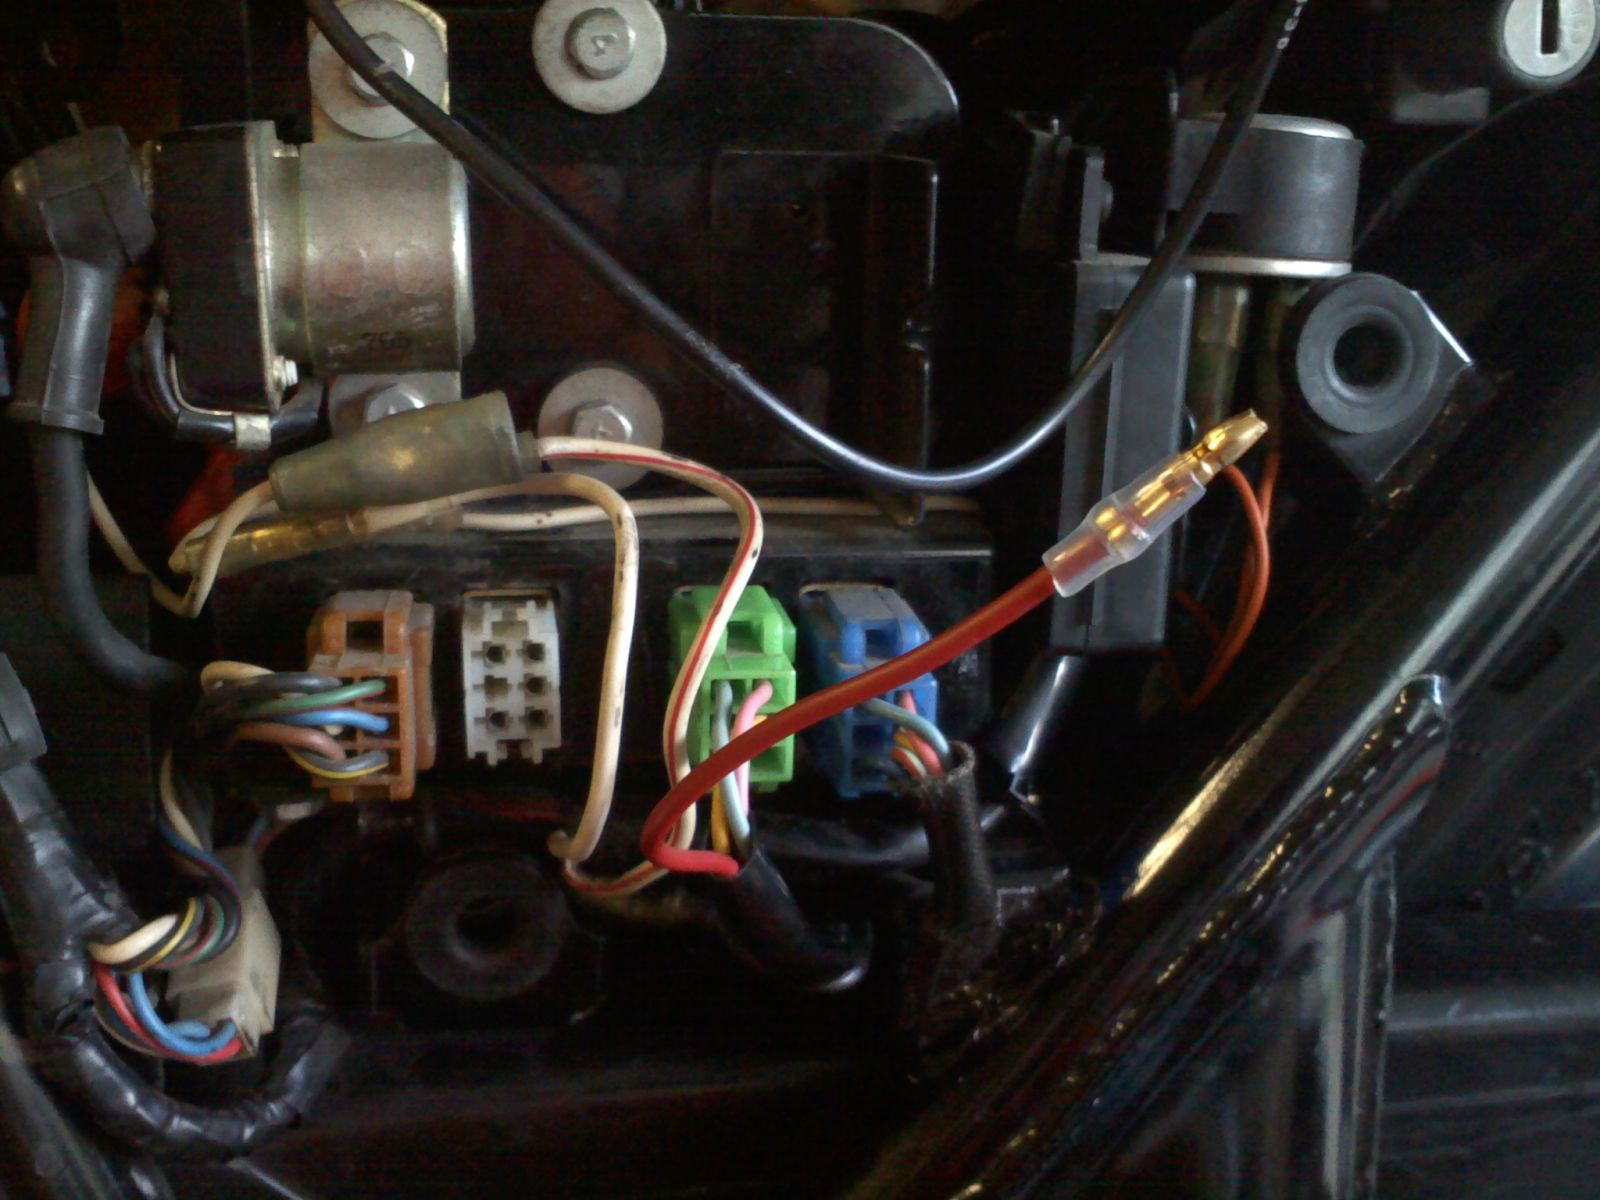 79 kz1000 wiring diagram 277v 3 way switch strange issue with ignition 78 kz1000a page